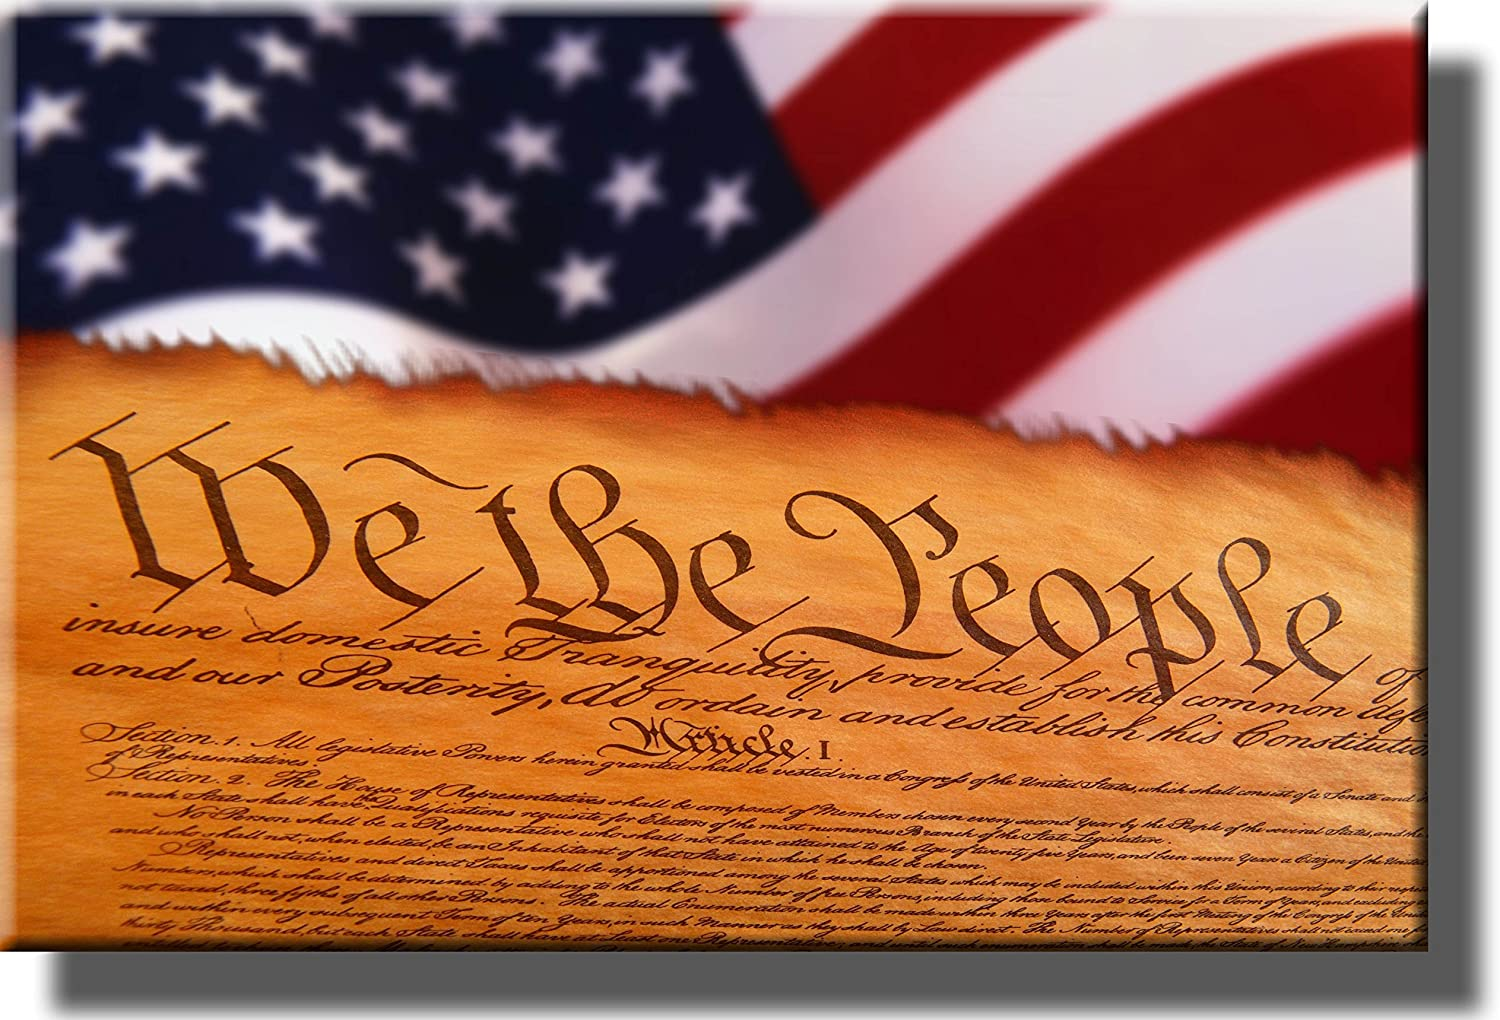 United States Constitution and Flag Picture on Stretched Canvas Wall Decor Ready to Hang!. We The People.